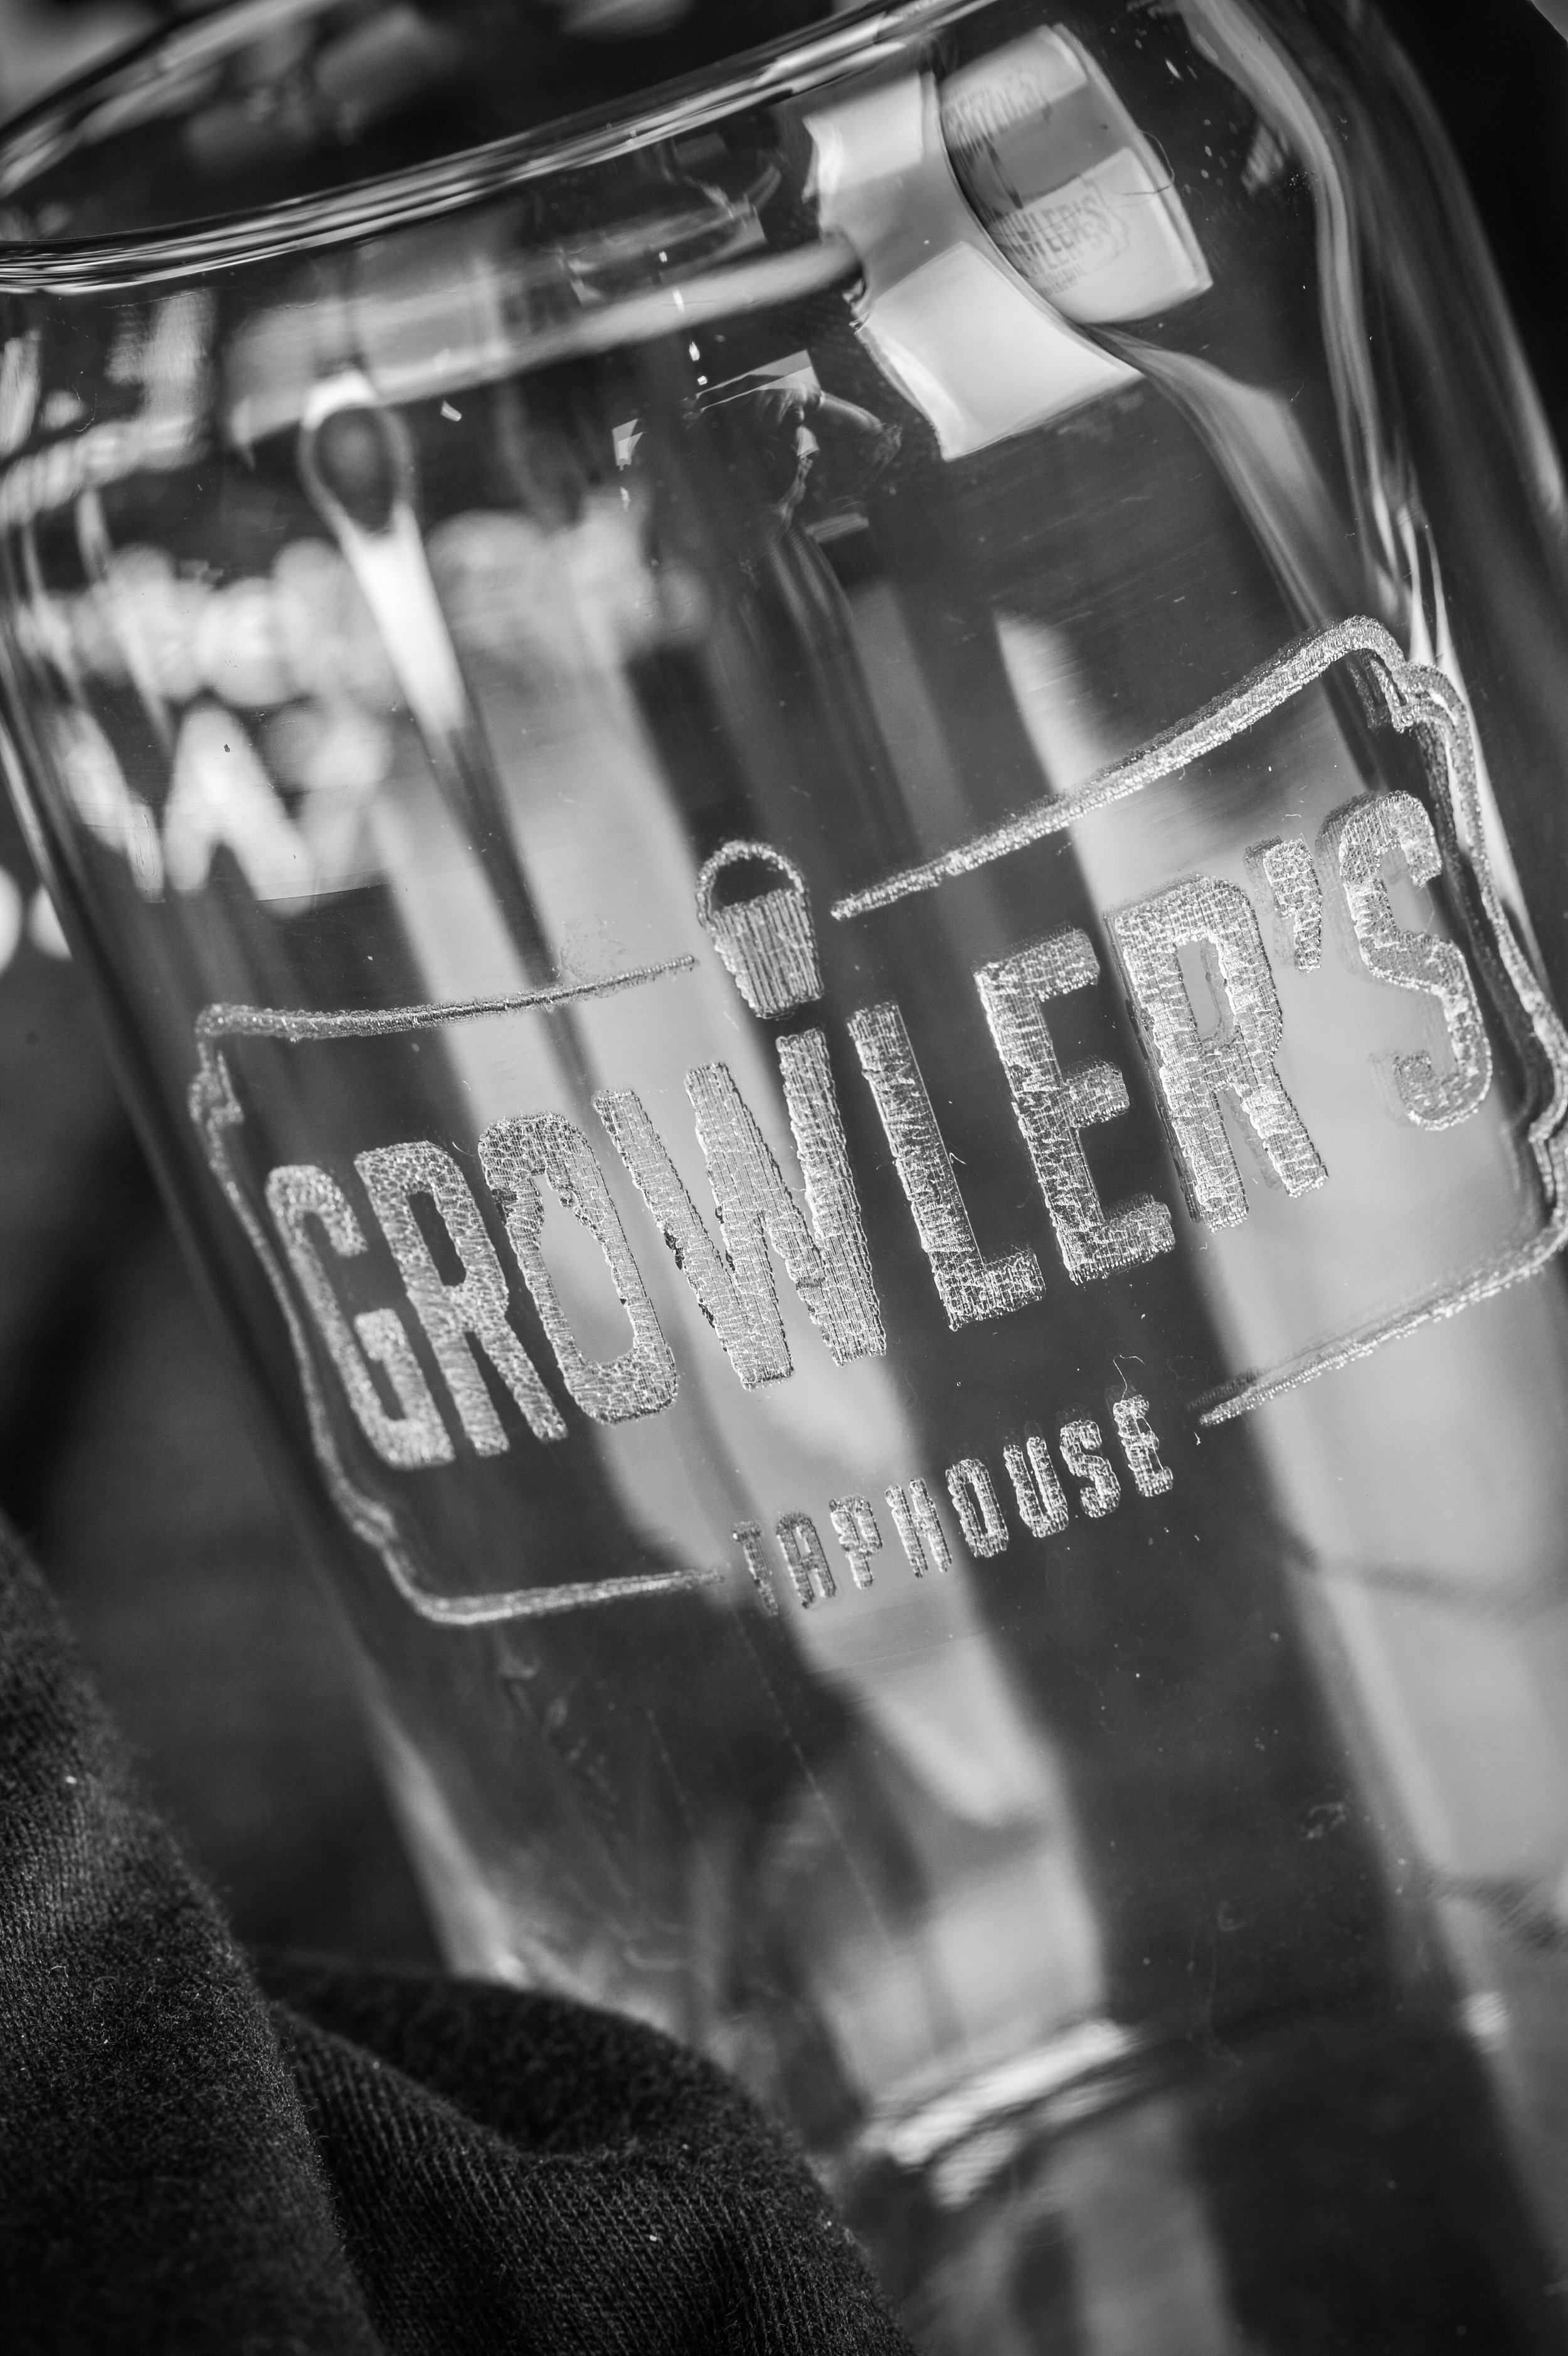 GROWLER'S BEER CAN GLASS